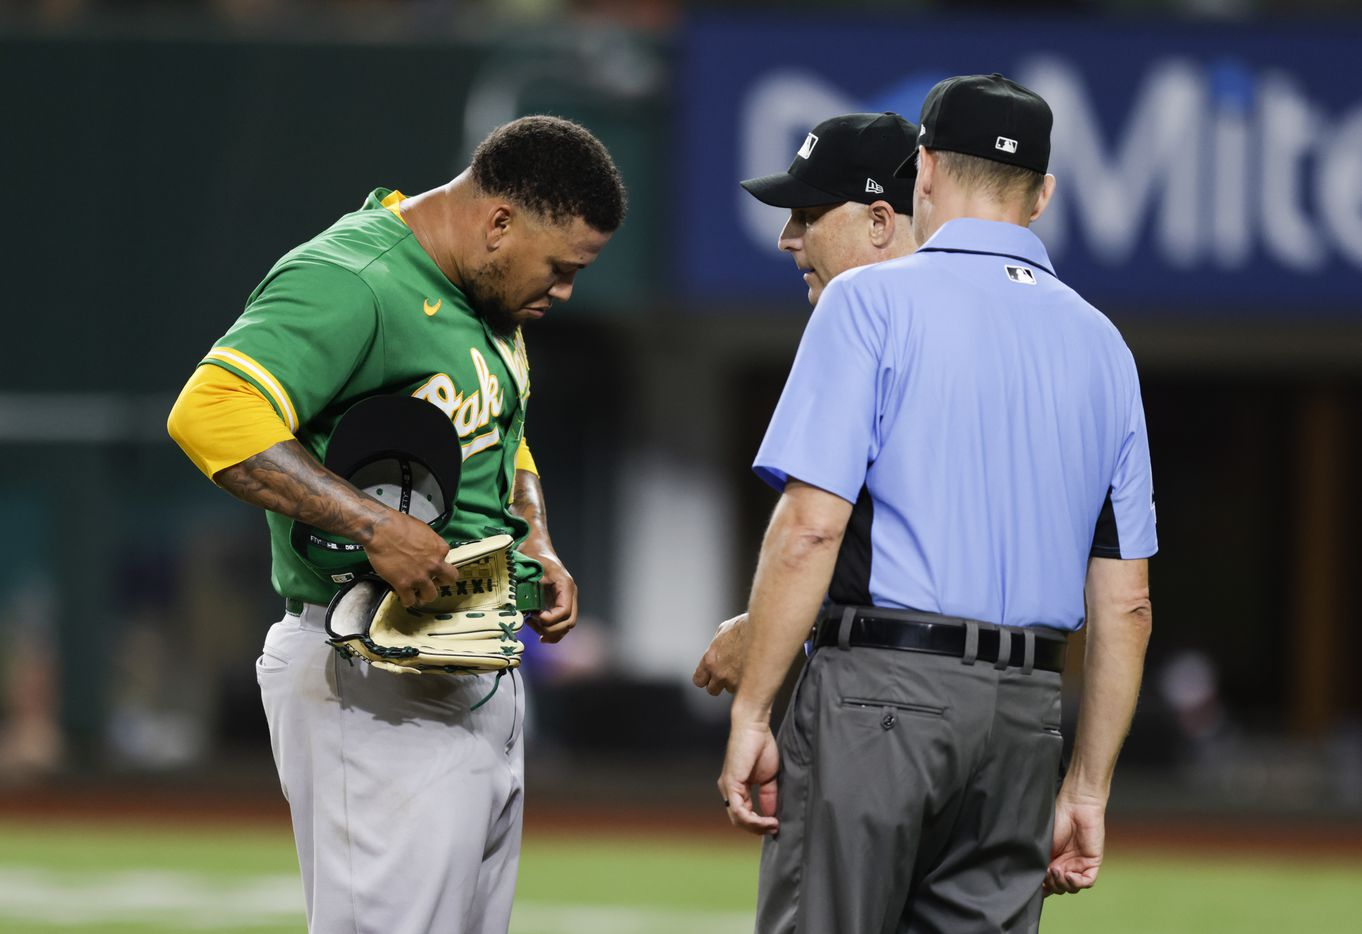 Home plate umpire Dan Iassogna and third base umpire Andy Fletcher inspect Oakland Athletics starting pitcher Frankie Montas' (47) belt, glove and hat after the fifth inning of a baseball game against the Texas Rangers in Arlington, Monday, June 21, 2021. (Brandon Wade/Special Contributor)